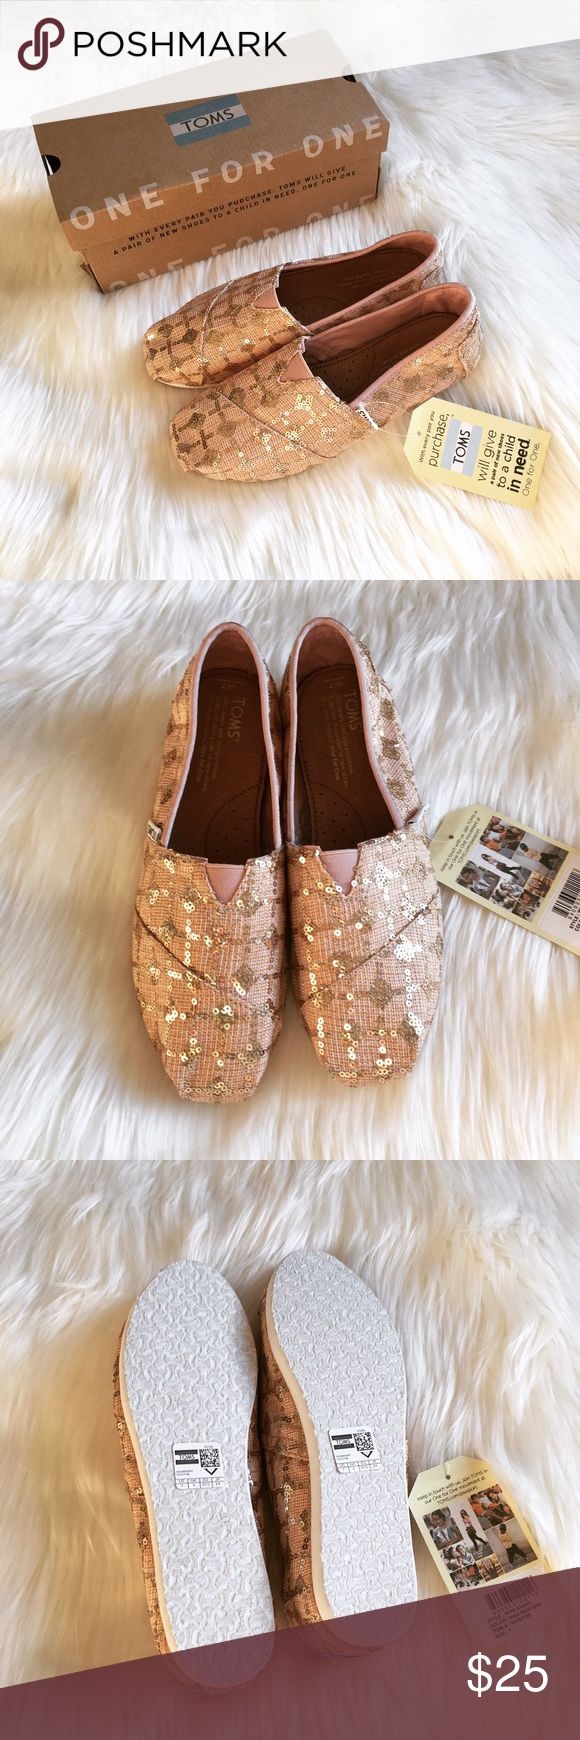 """Rose Gold TOMS Brand new size 7 TOMS. """"Rose gold"""" meaning a pale pink with golden sequins. I love rose gold so I bought them and then just never got around to wearing them. 🎀 Reasonable offers are welcome - let's haggle! Happy to negotiate a personalized bundle discount! 🎀 TOMS Shoes Espadrilles"""